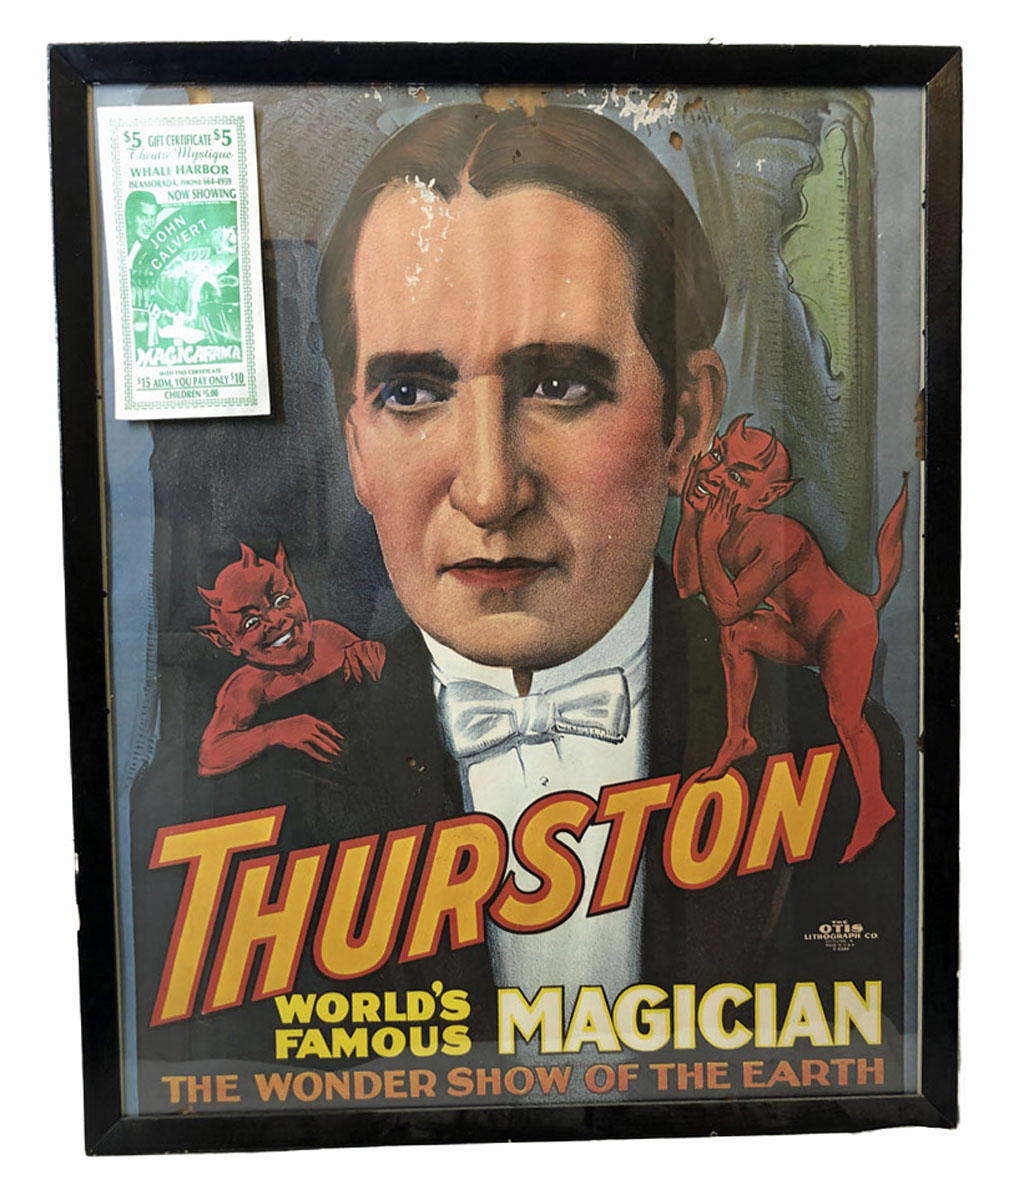 https://0201.nccdn.net/1_2/000/000/178/c5d/POSTER-THURSTON--WORLD-S-FAMOUS-MAGICIAN-use.jpg